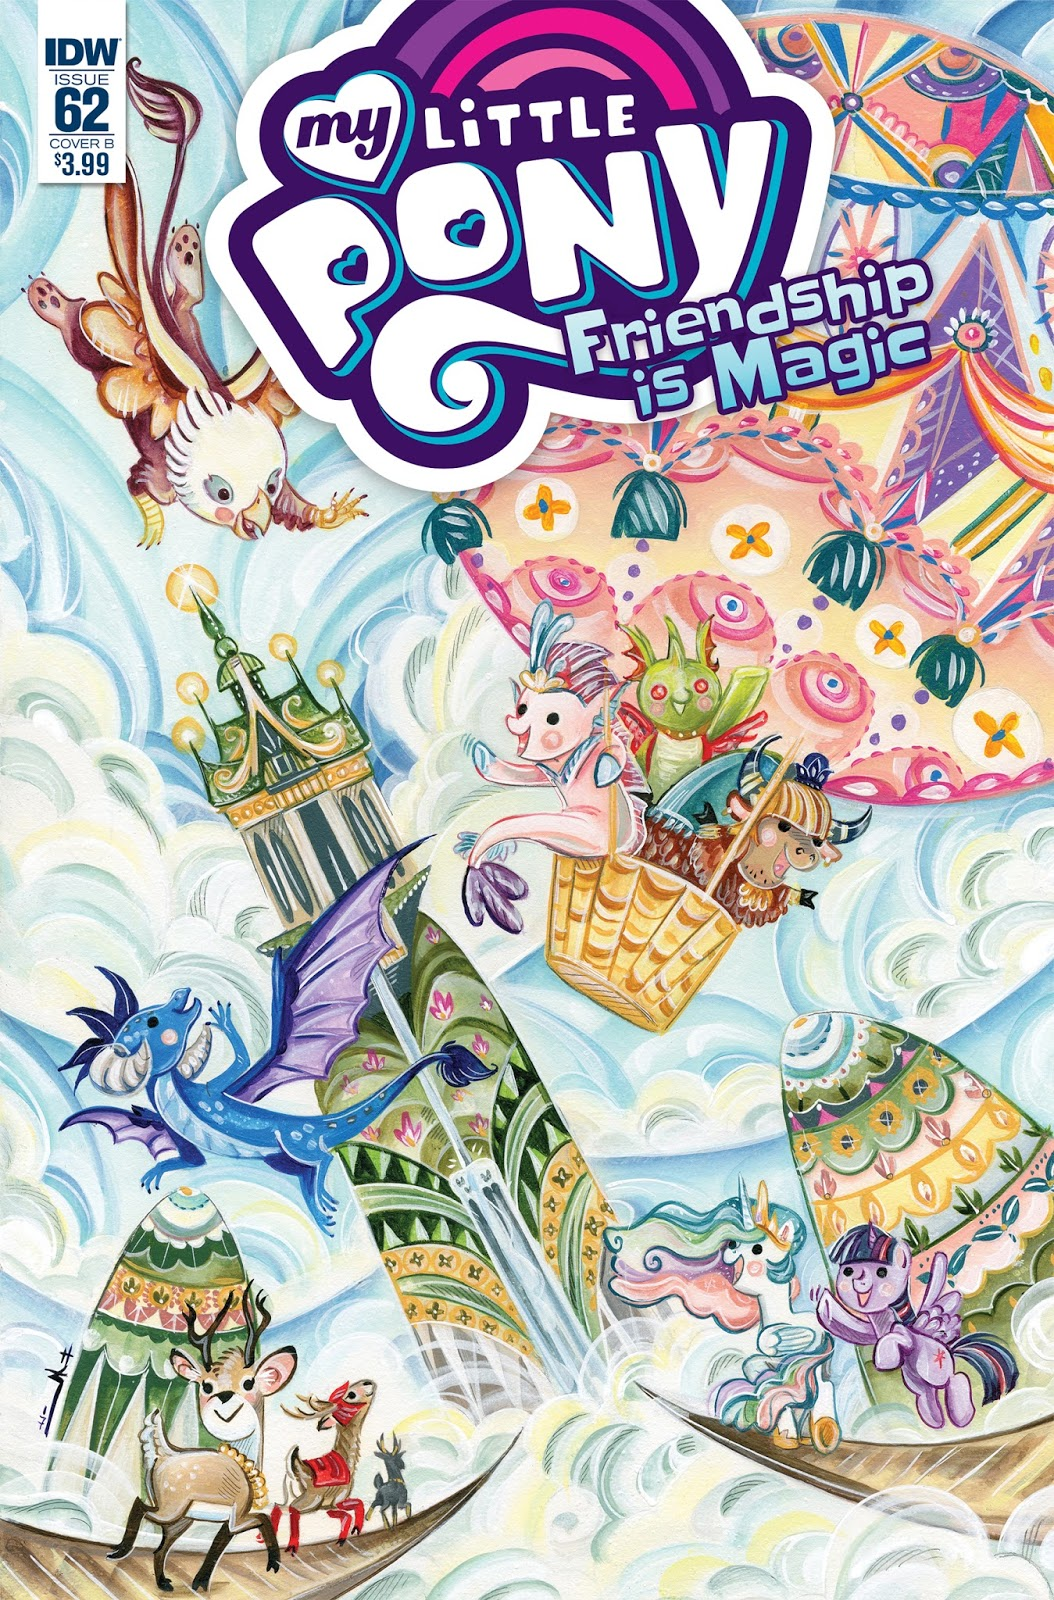 Three Page Preview For My Little Pony Comic 62